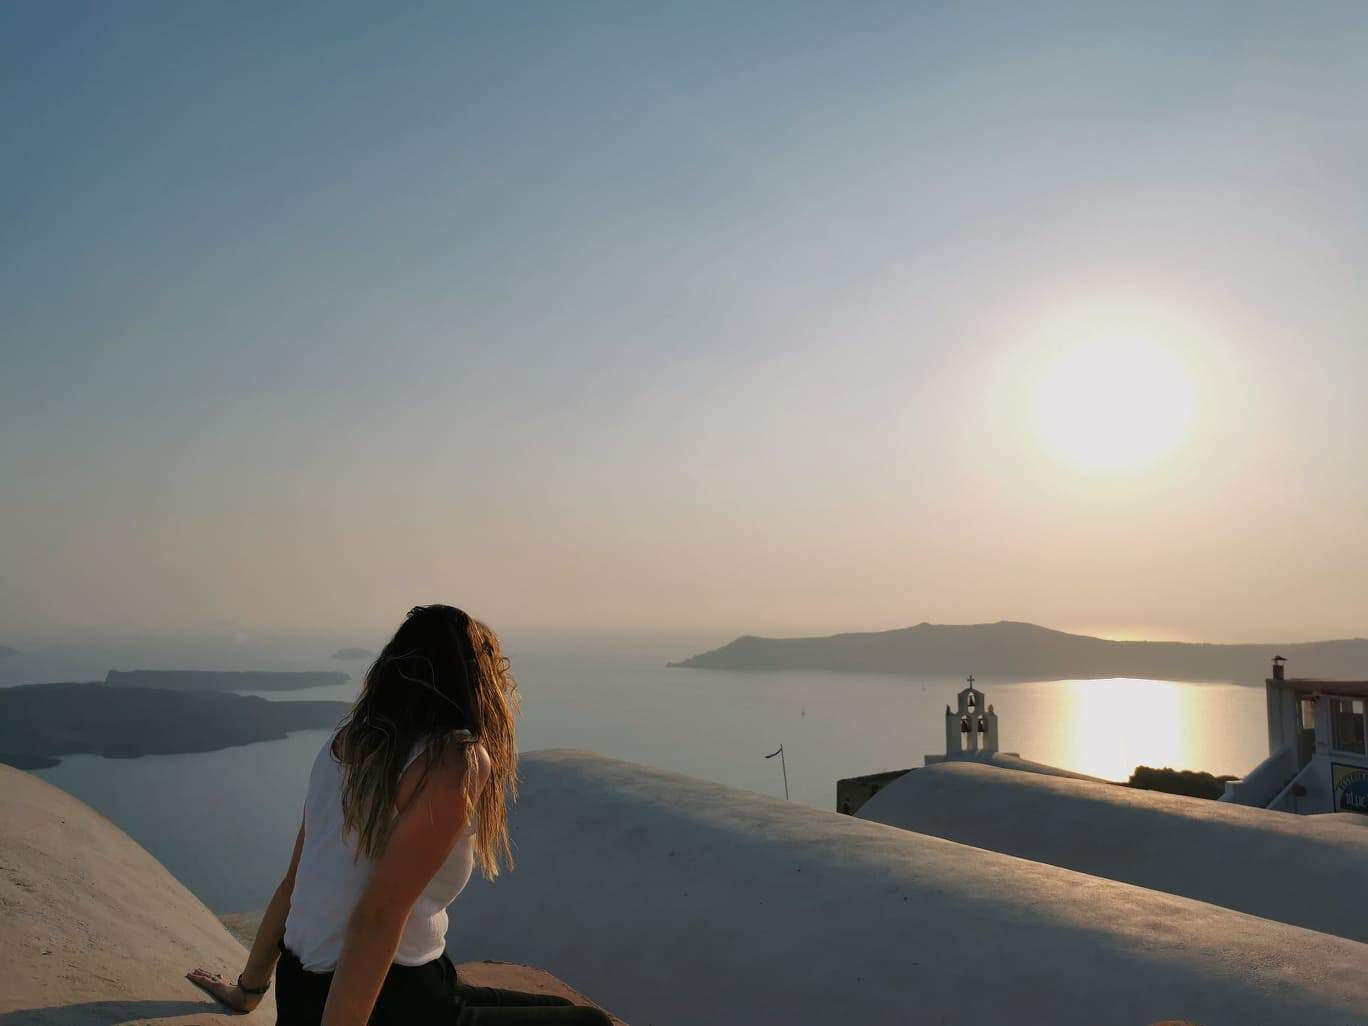 sunset over Santorini with Girl looking out at view over Caldera - Greek Holiday Destinations